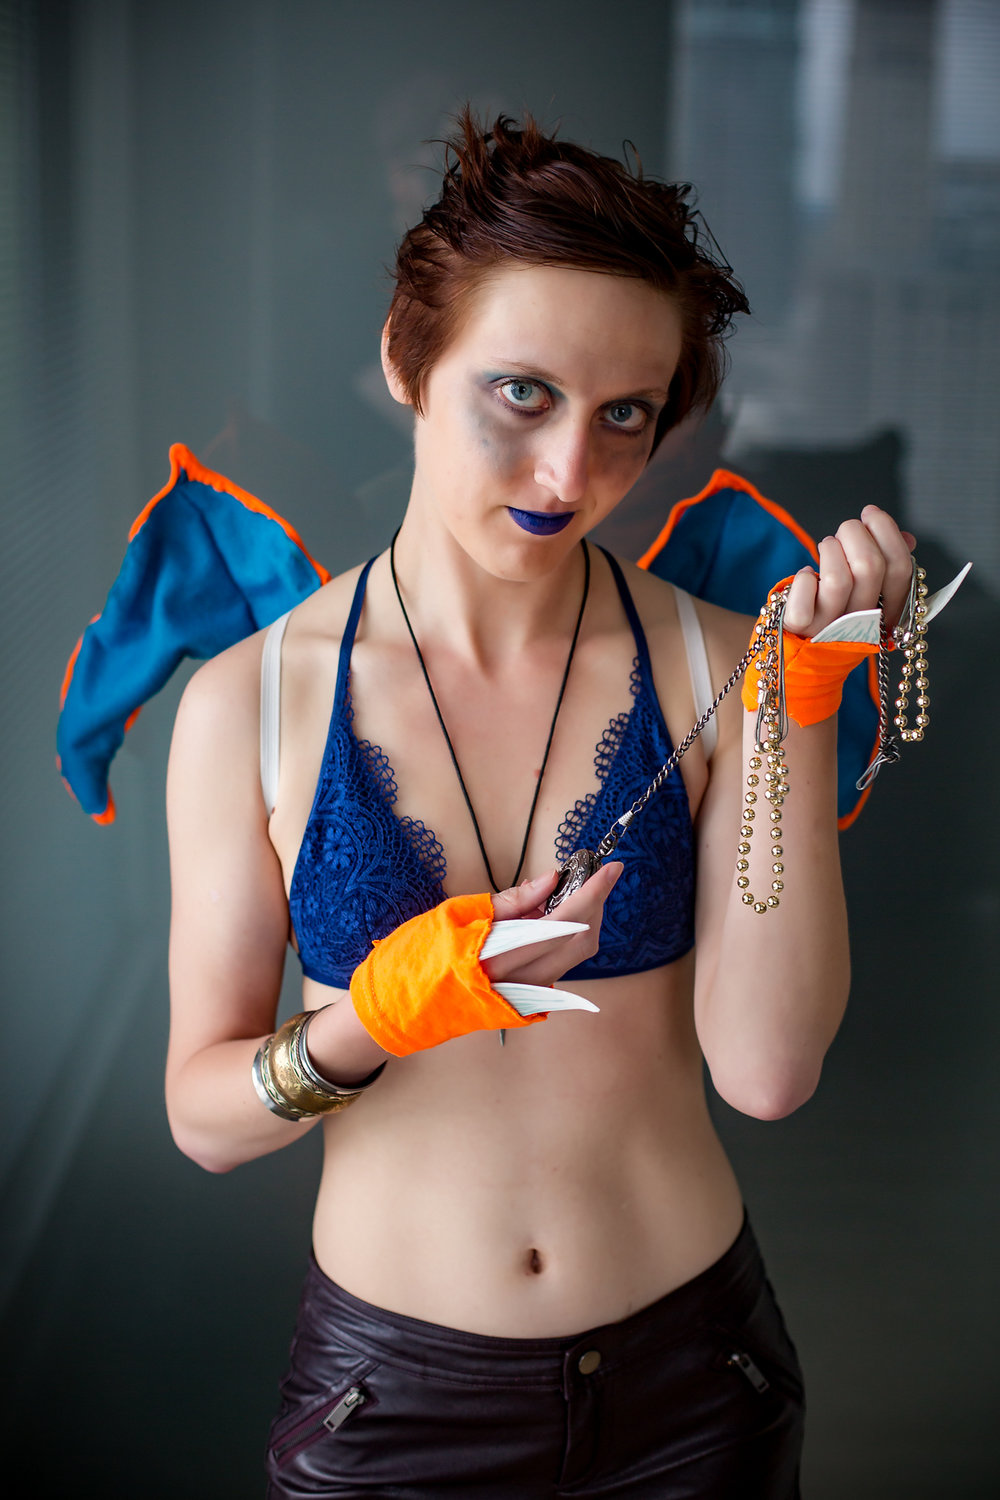 Check out the rest of this dragon-tastic set by backing at http://patreon.com/hellapositive!